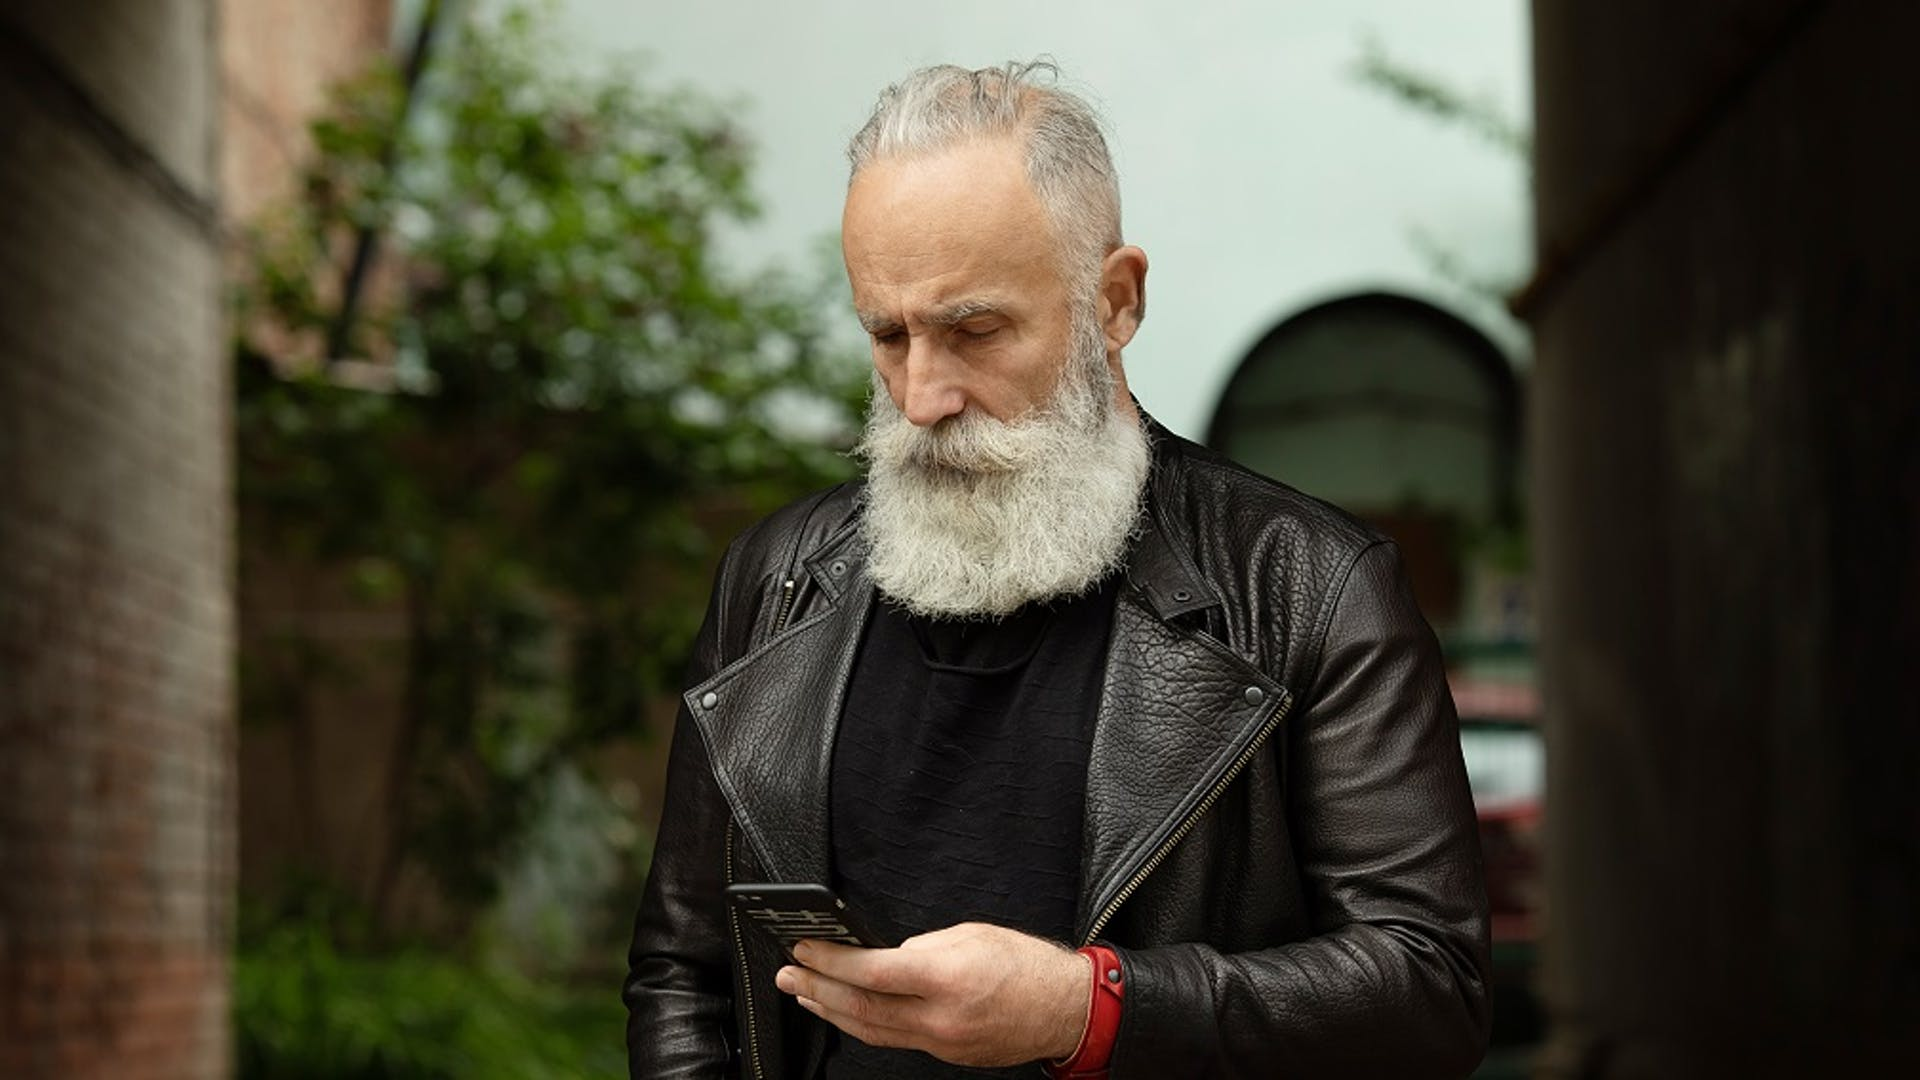 mature man in leather jacket looking at mobile phone